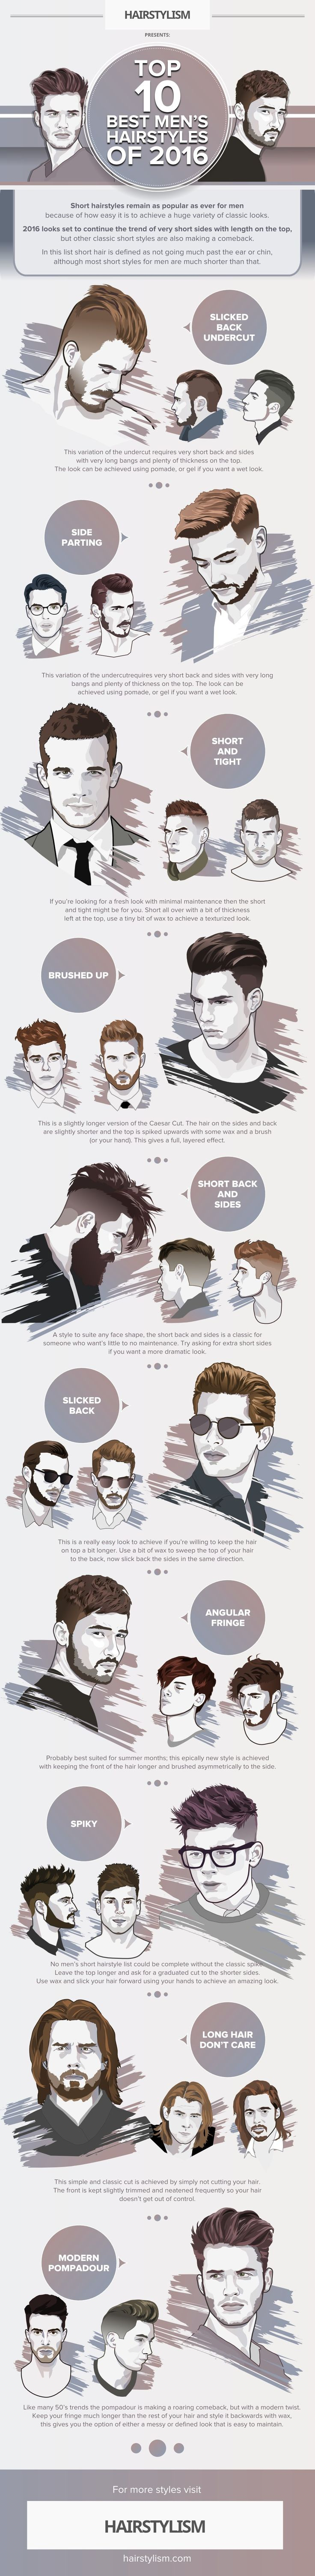 best haribo images on pinterest hombre hairstyle hair cut